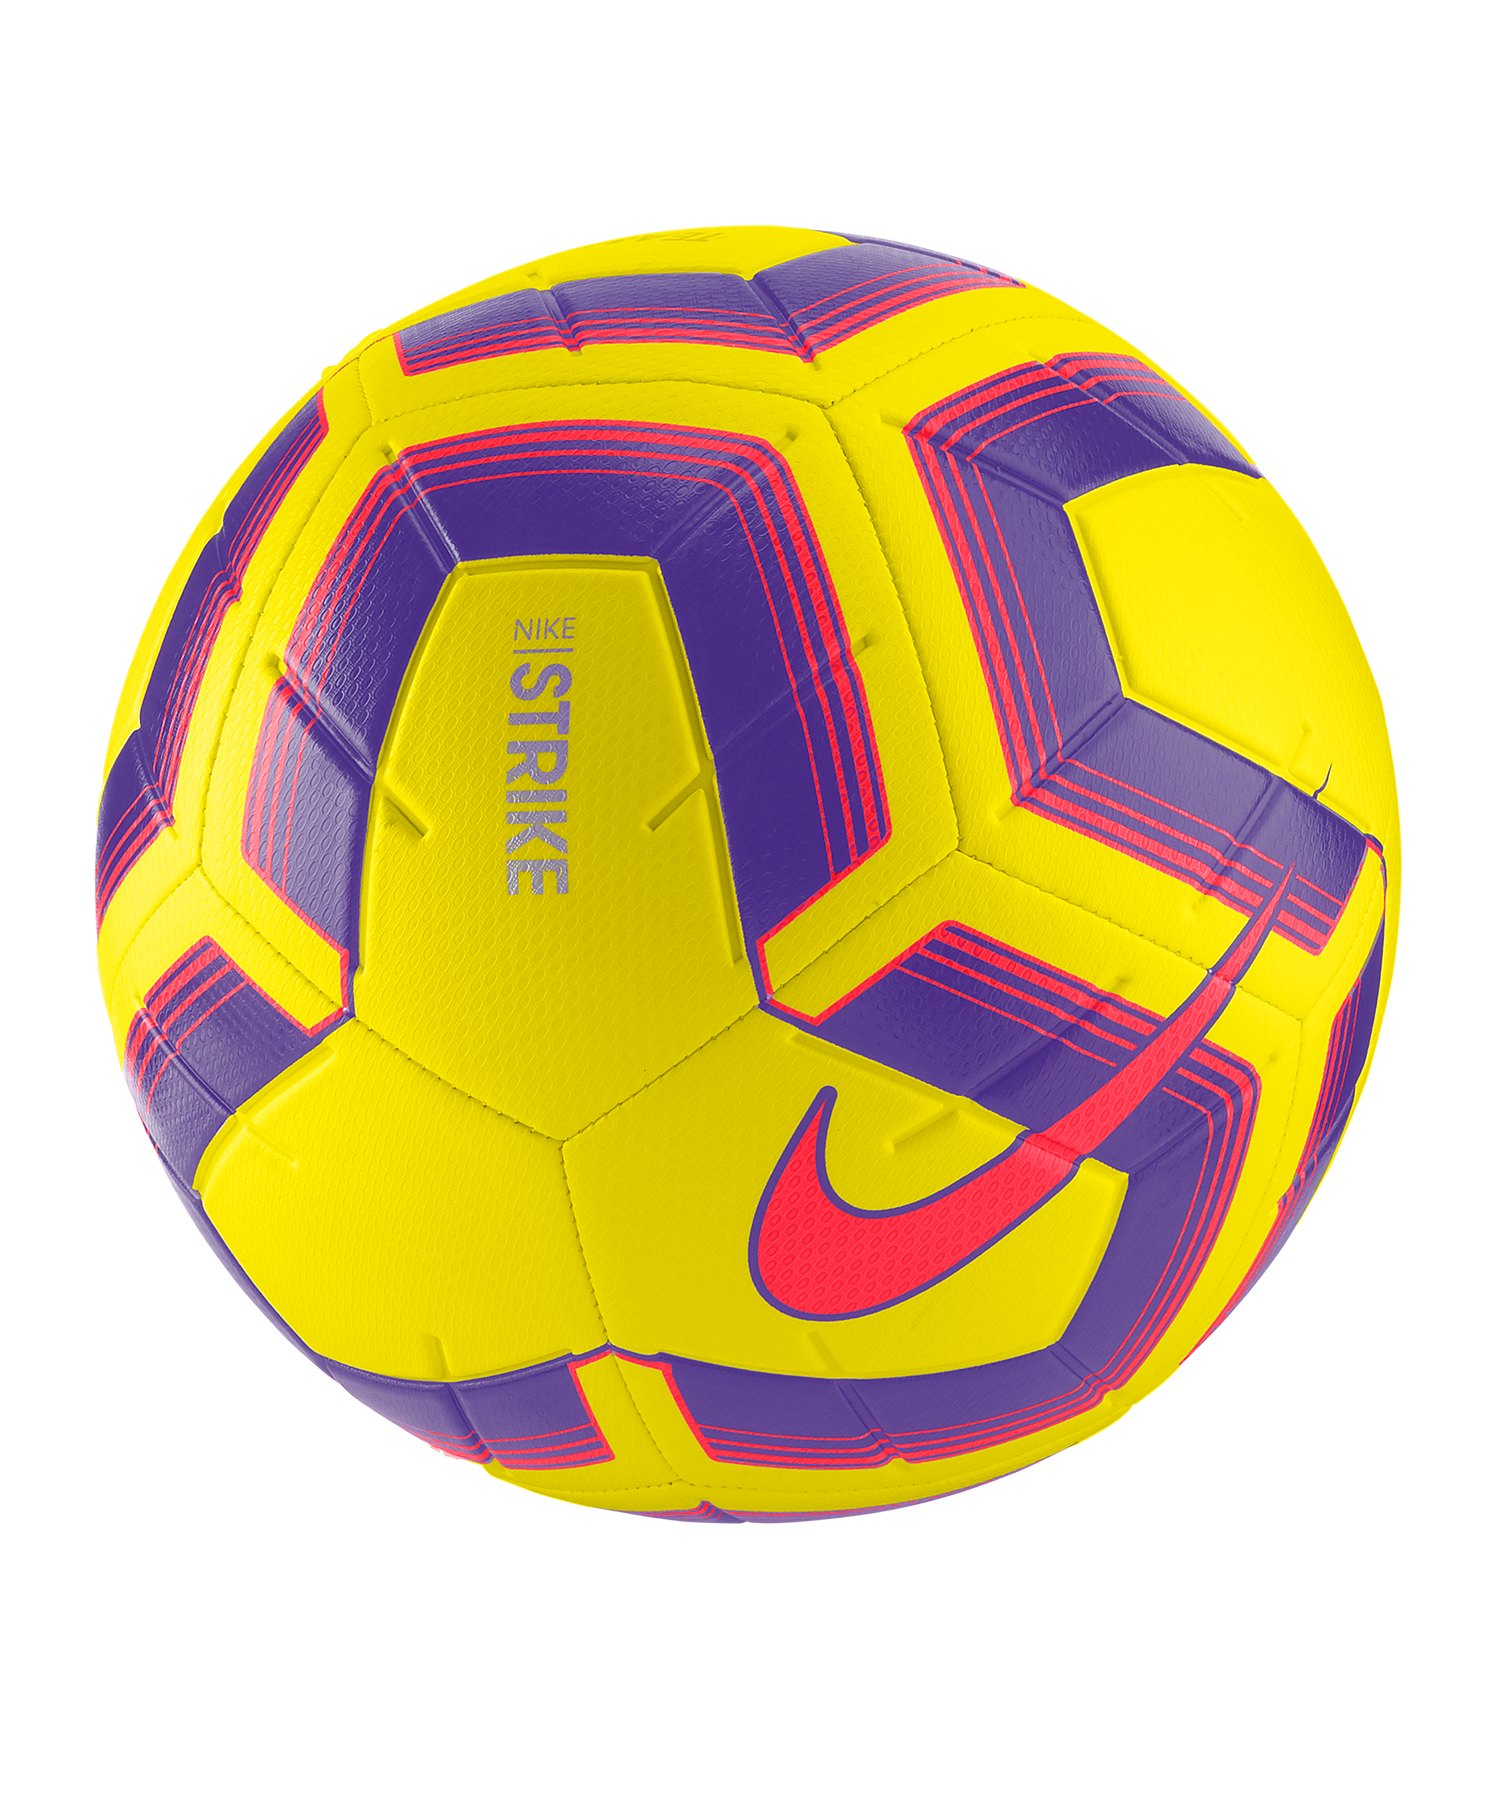 Nike Strike Team Trainingsball Gelb F710 - gelb